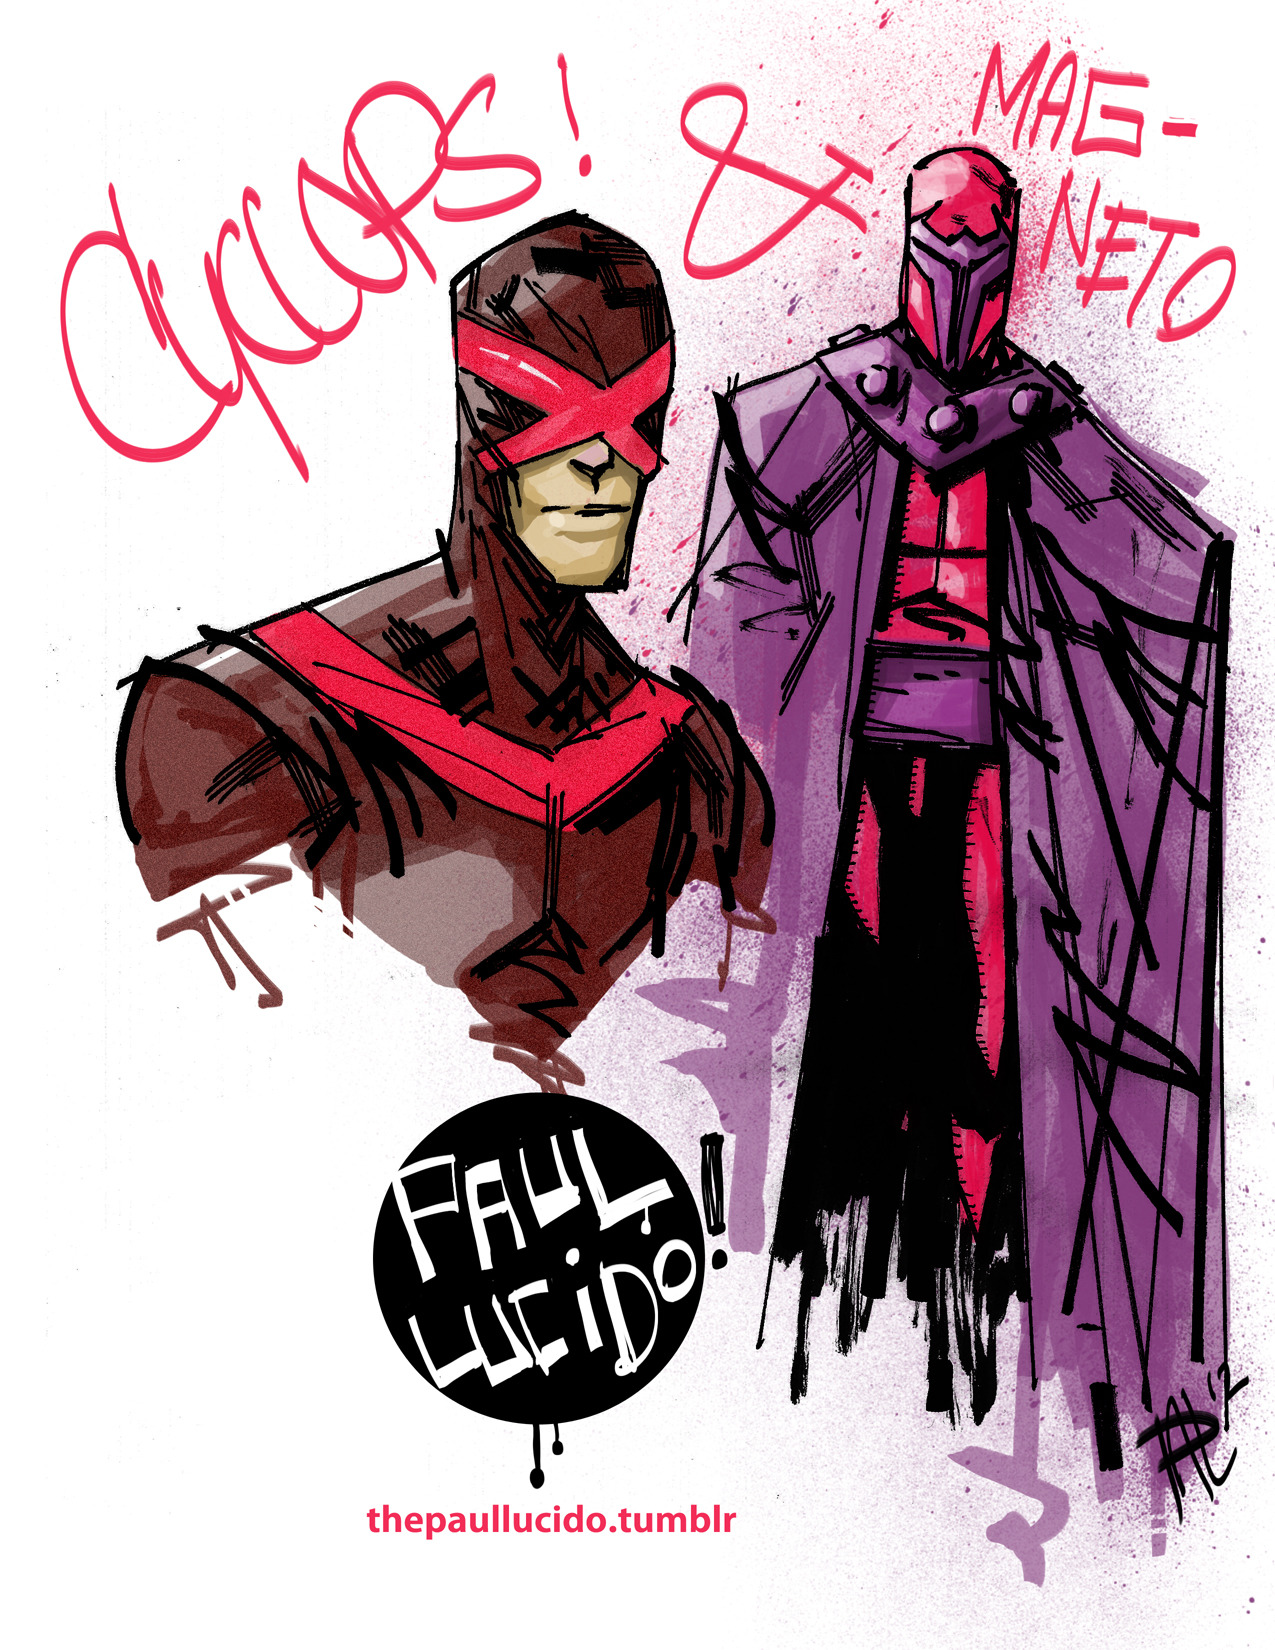 Cyclops and Magneto! Brush Pen and Photoshop